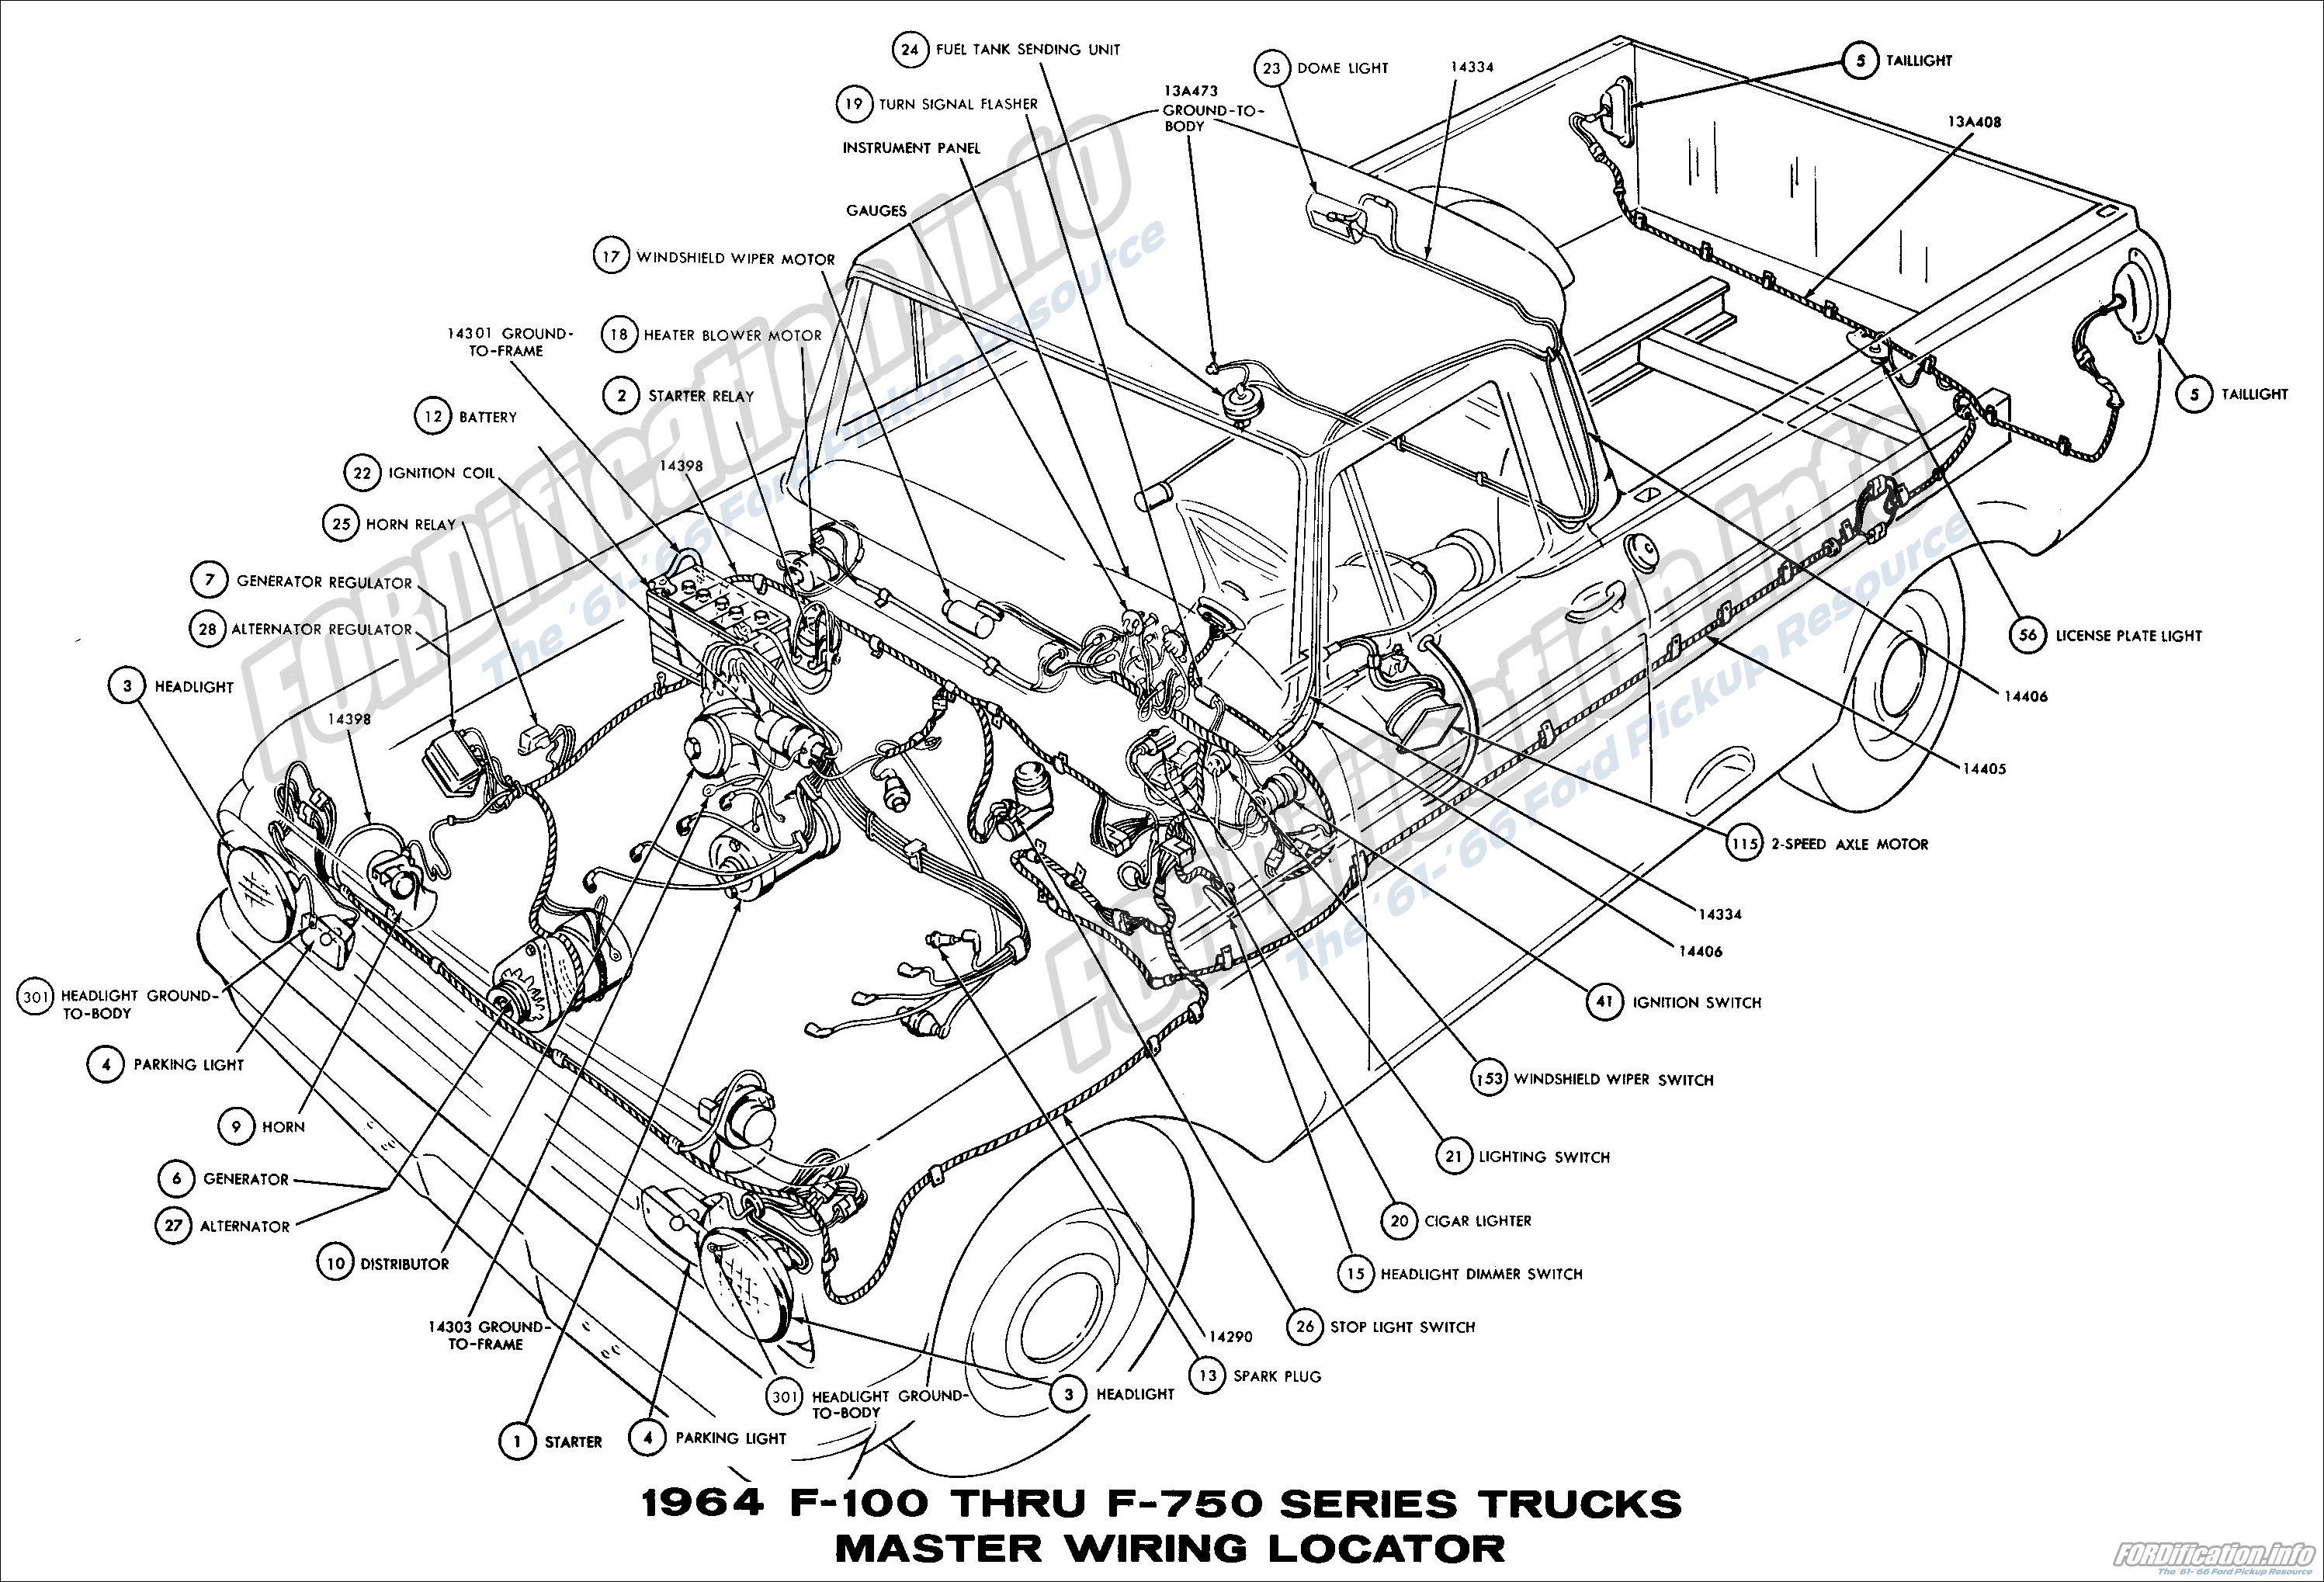 [DIAGRAM_5LK]  1964 Ford Truck Wiring Diagrams - FORDification.info - The '61-'66 Ford  Pickup Resource | 1966 Ford F100 Blinker Switch Wiring |  | FORDification.info